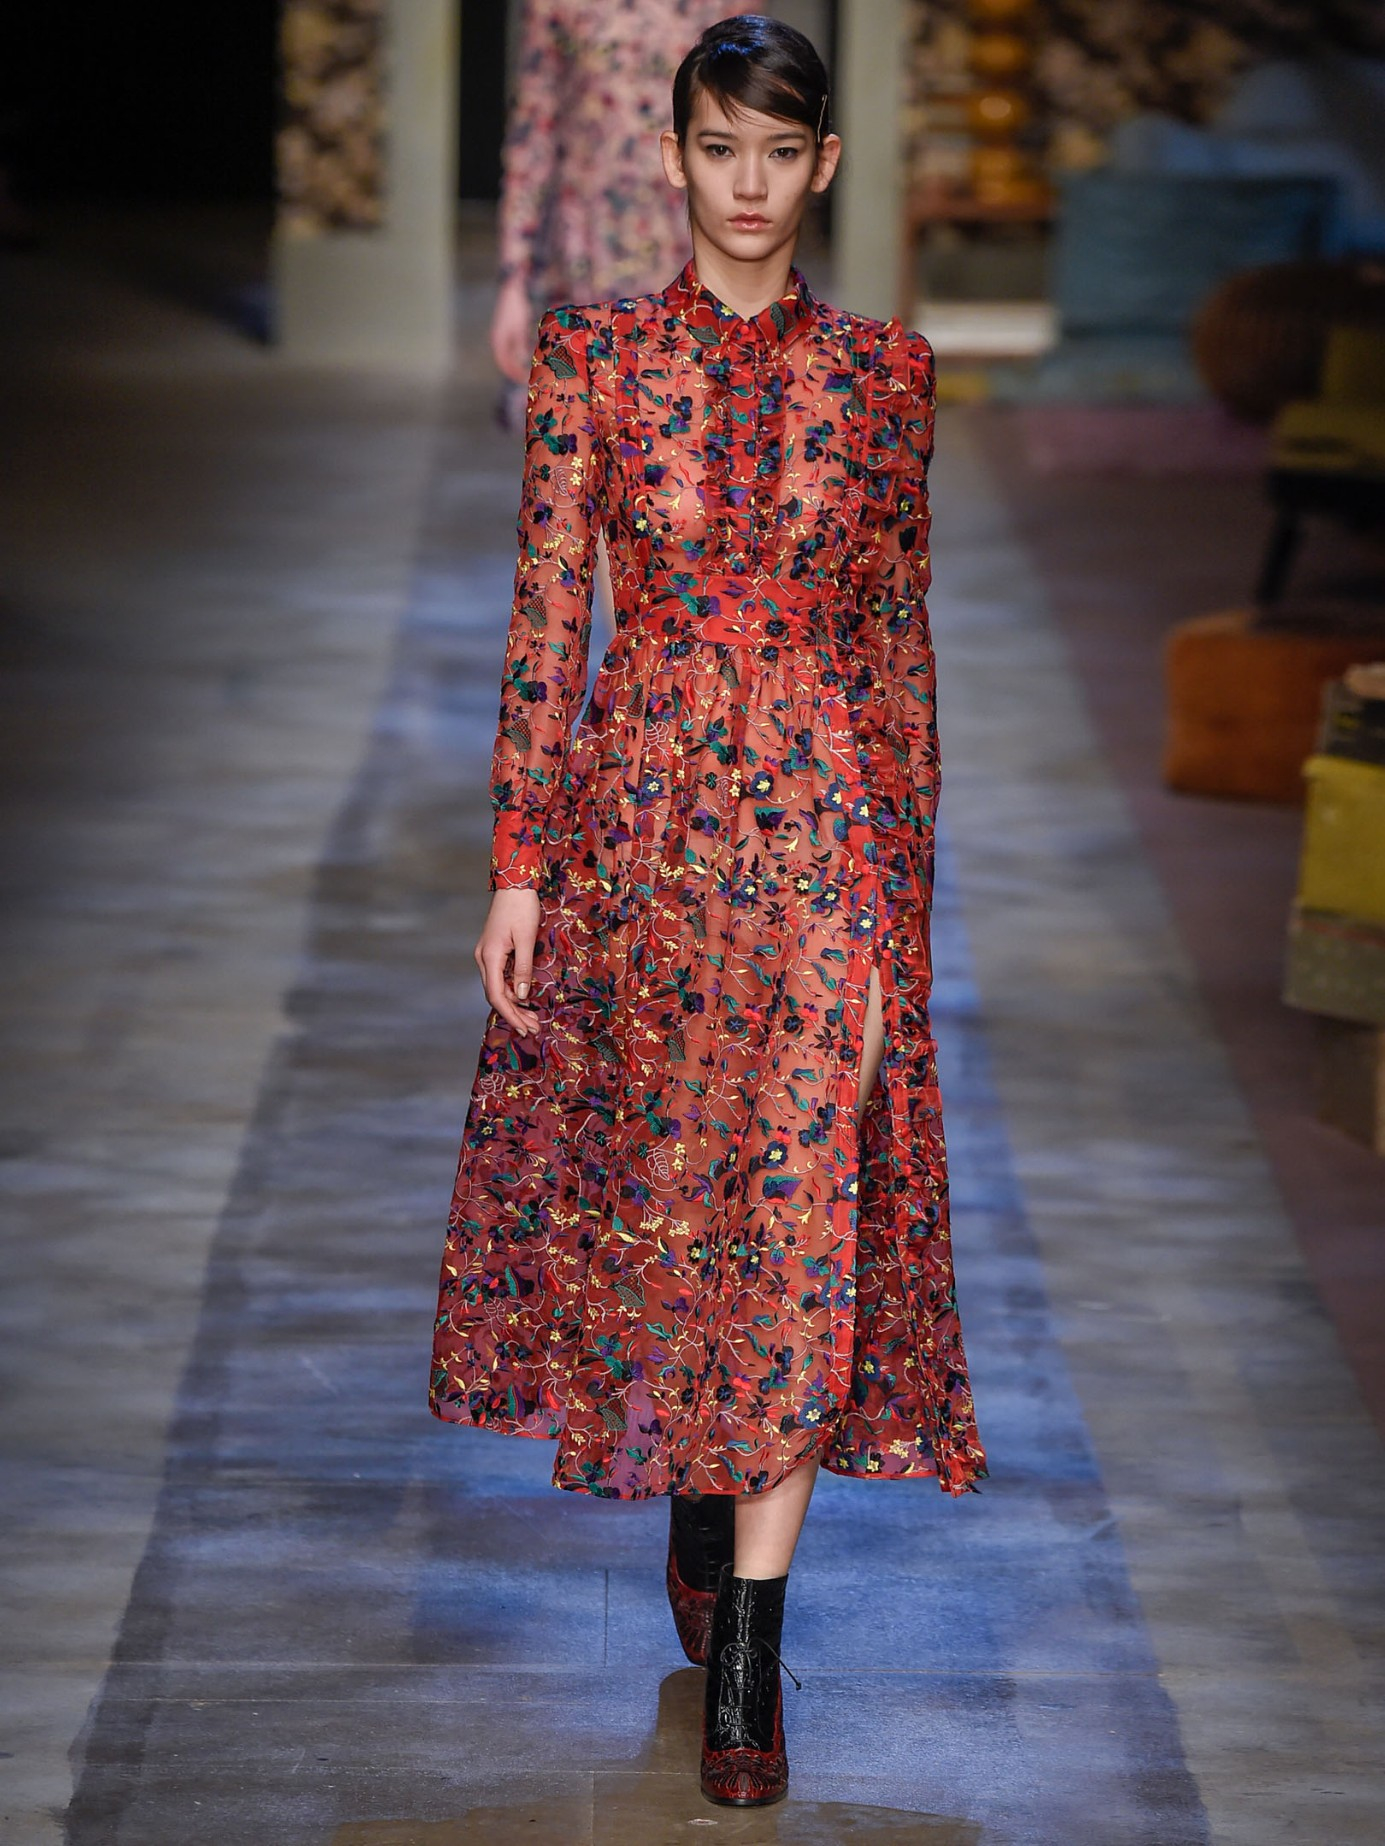 Enticing Erdem Moralioglu | Marvellous Erdem Dress